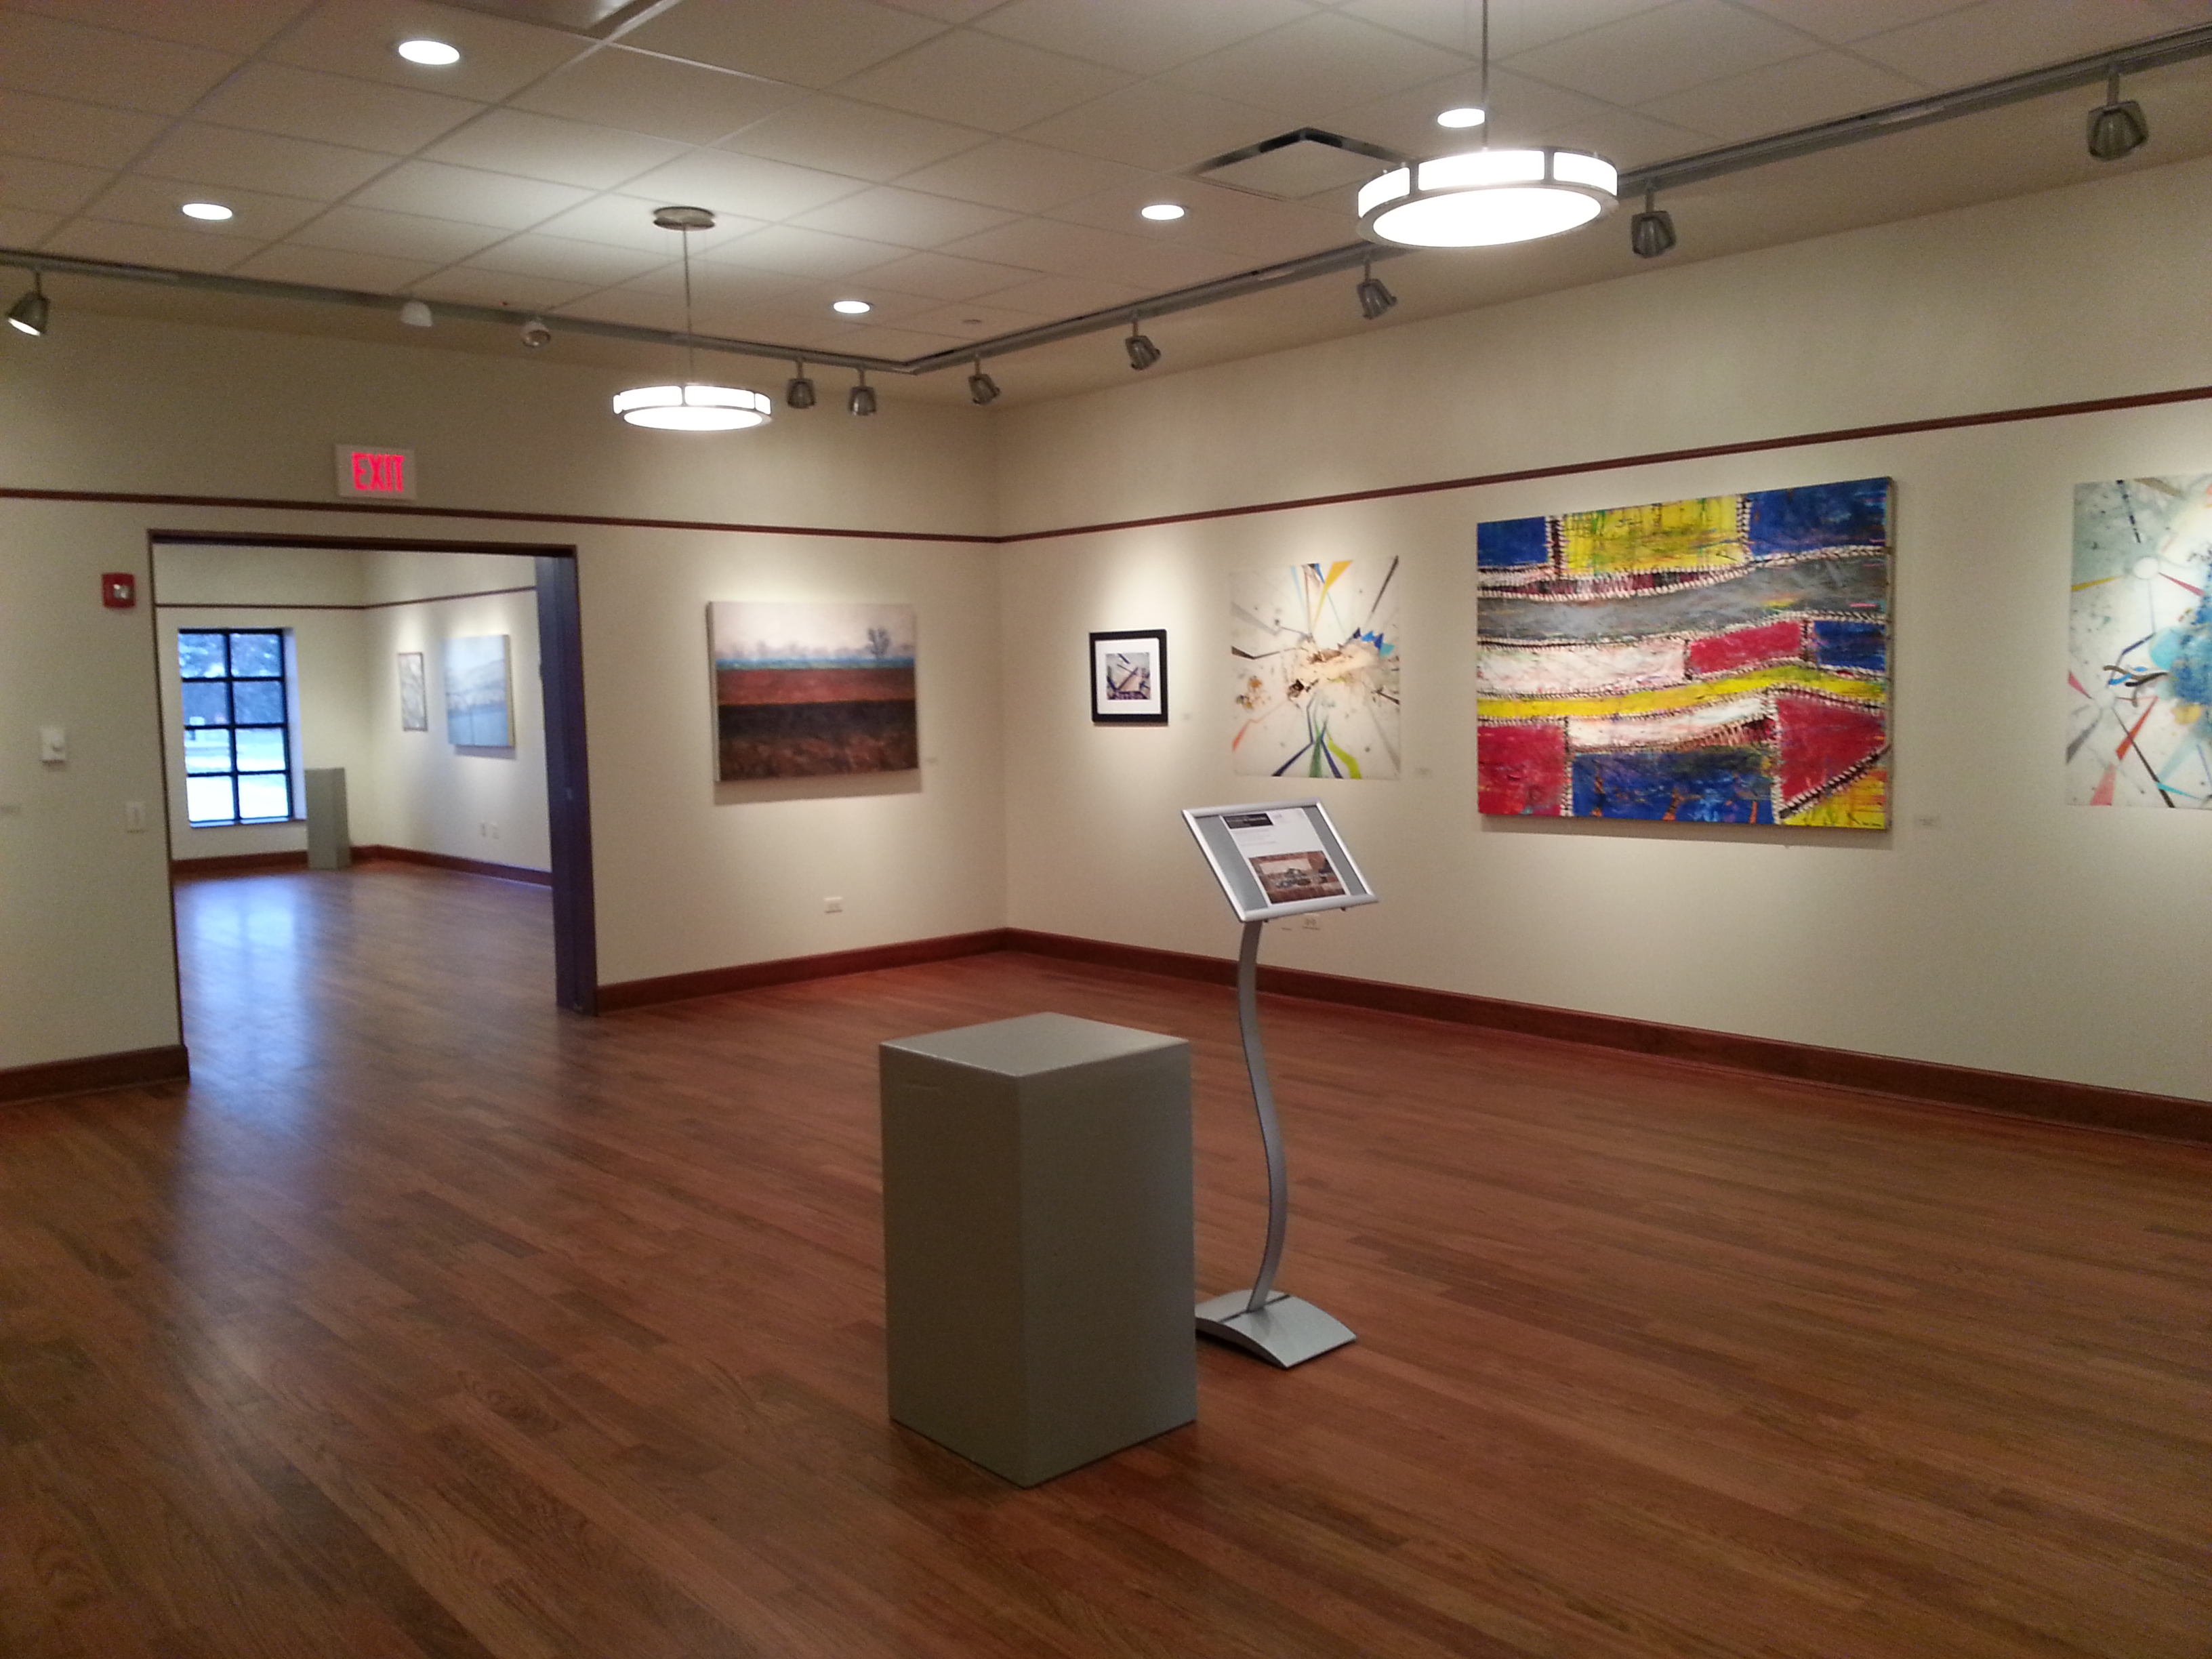 "Pictured is the Lewis University inaugural exhibit,  ""The President's Fifth Annual Art Show"" in February 2012. The exhibit featured the work of various Lewis students and alumni. The Art Gallery is located in a new addition to the Oremus Fine Arts Center on the Lewis campus in Romeoville."